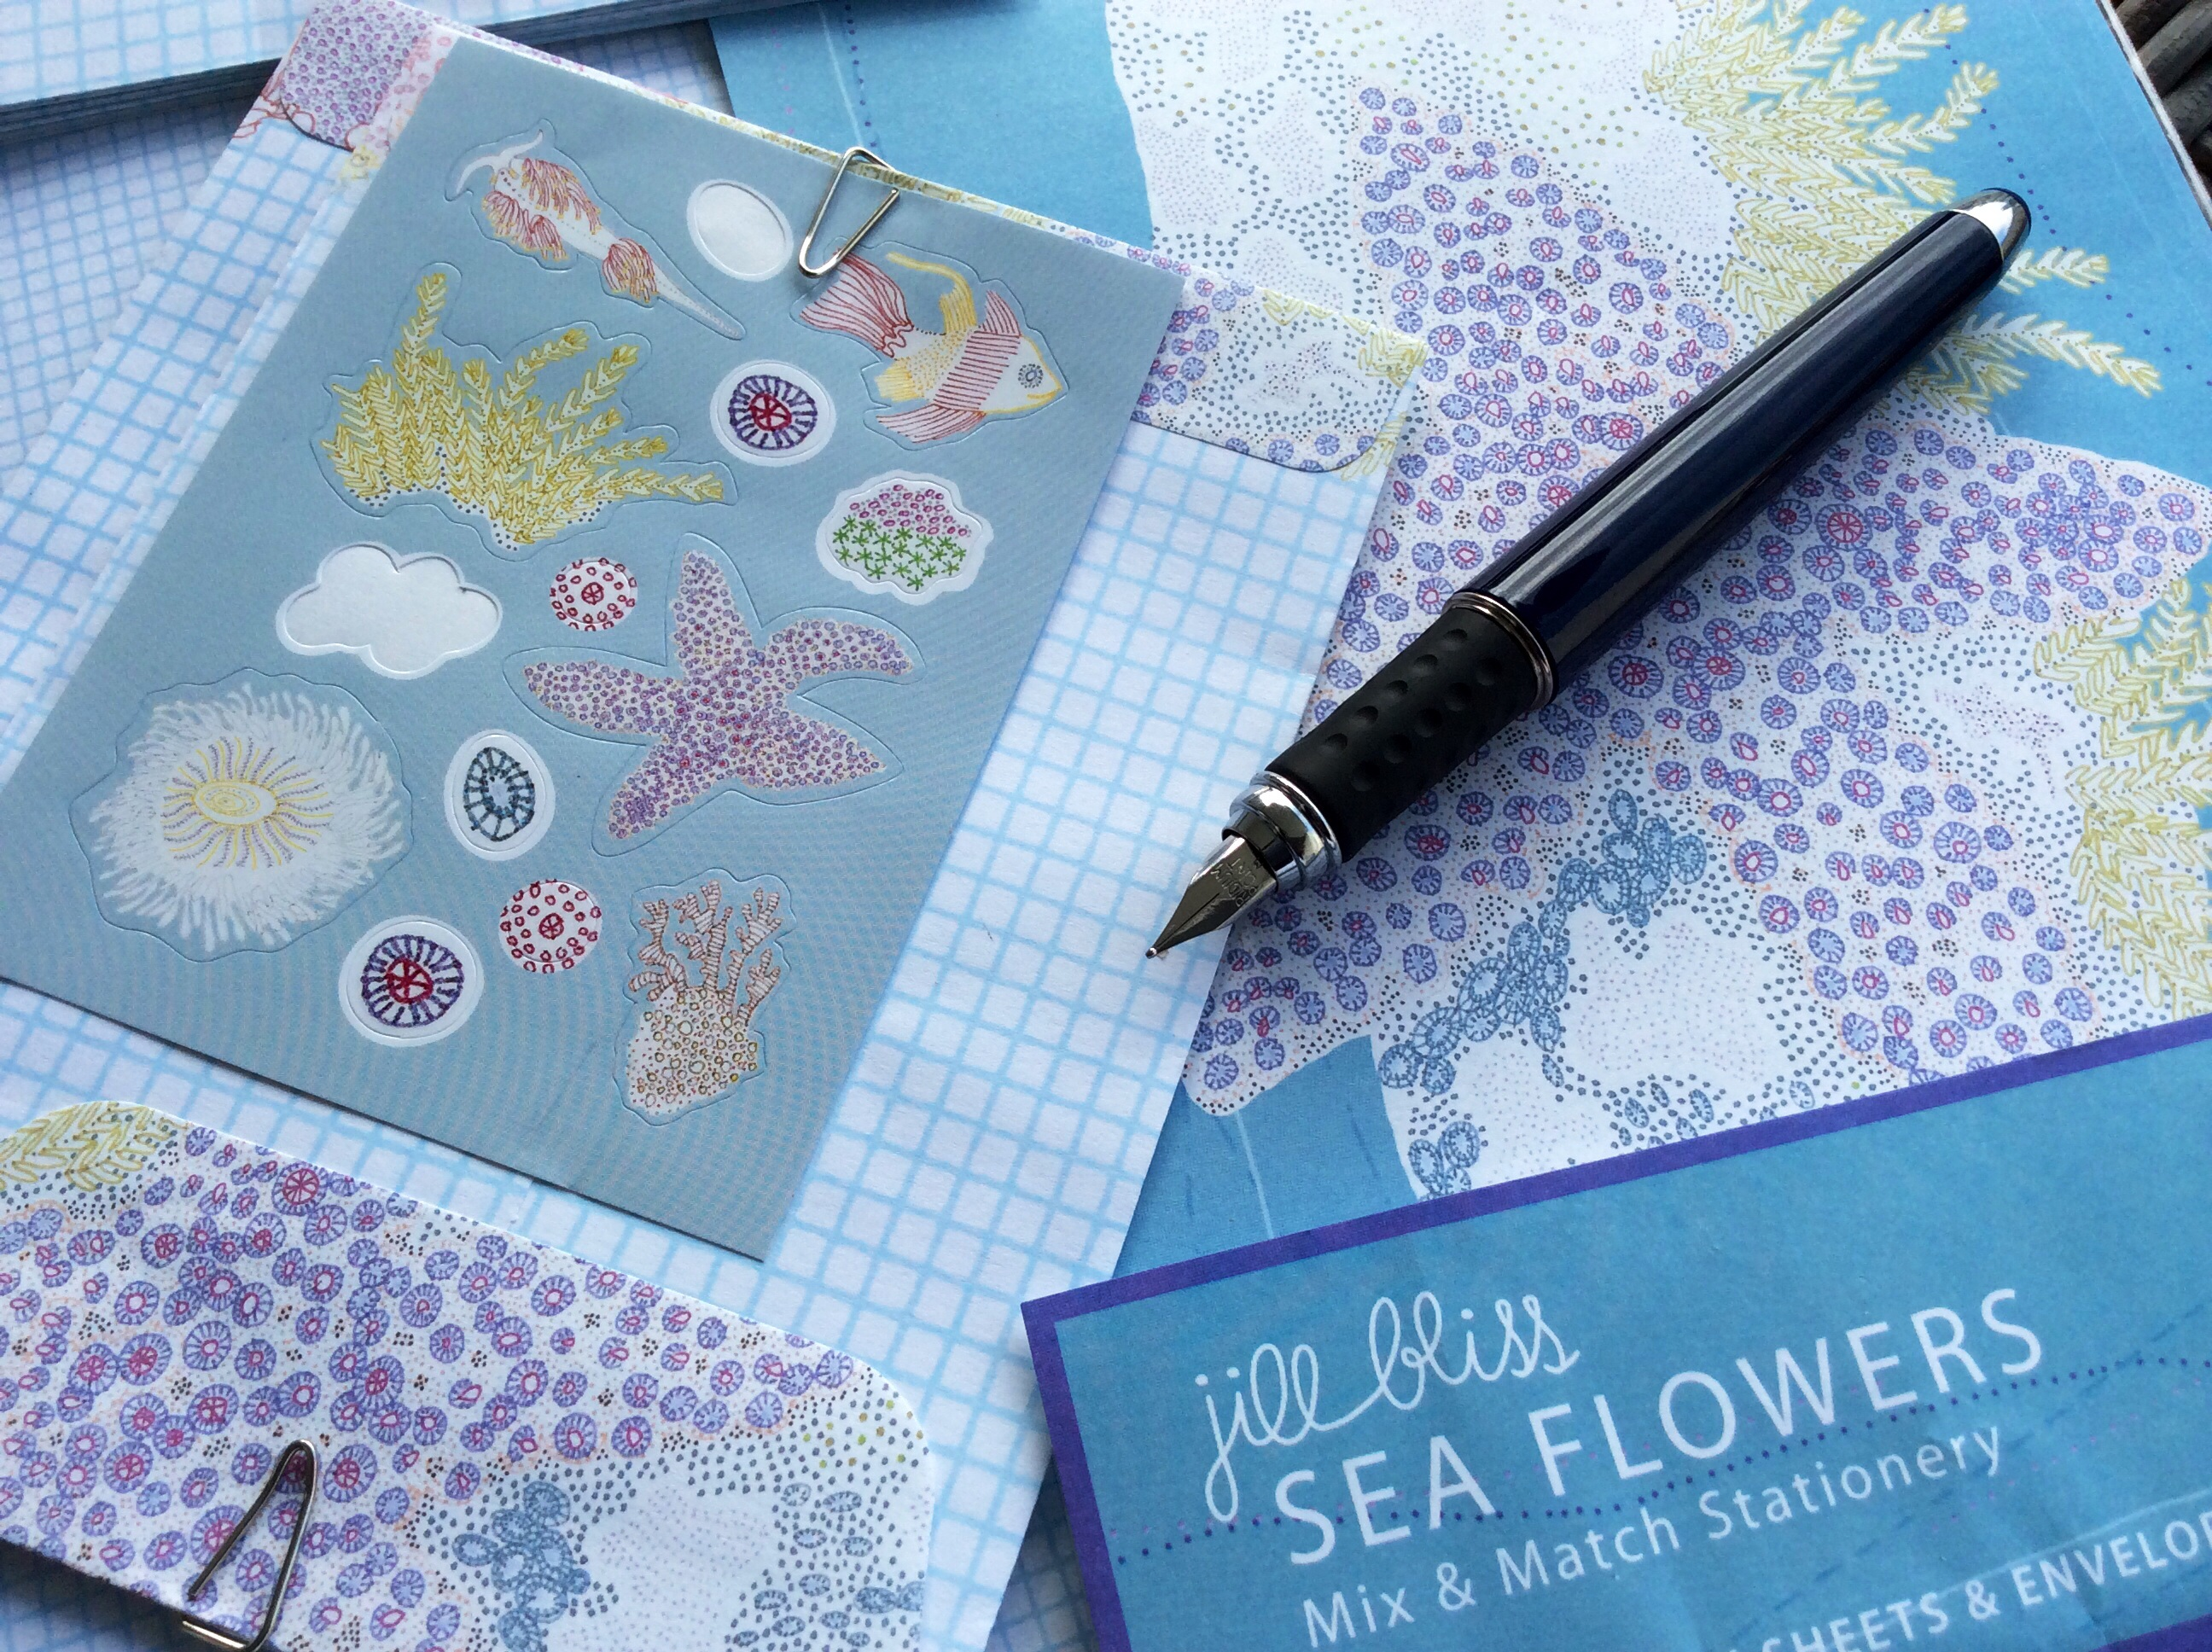 Mix and Match Stationery by Jill Bliss